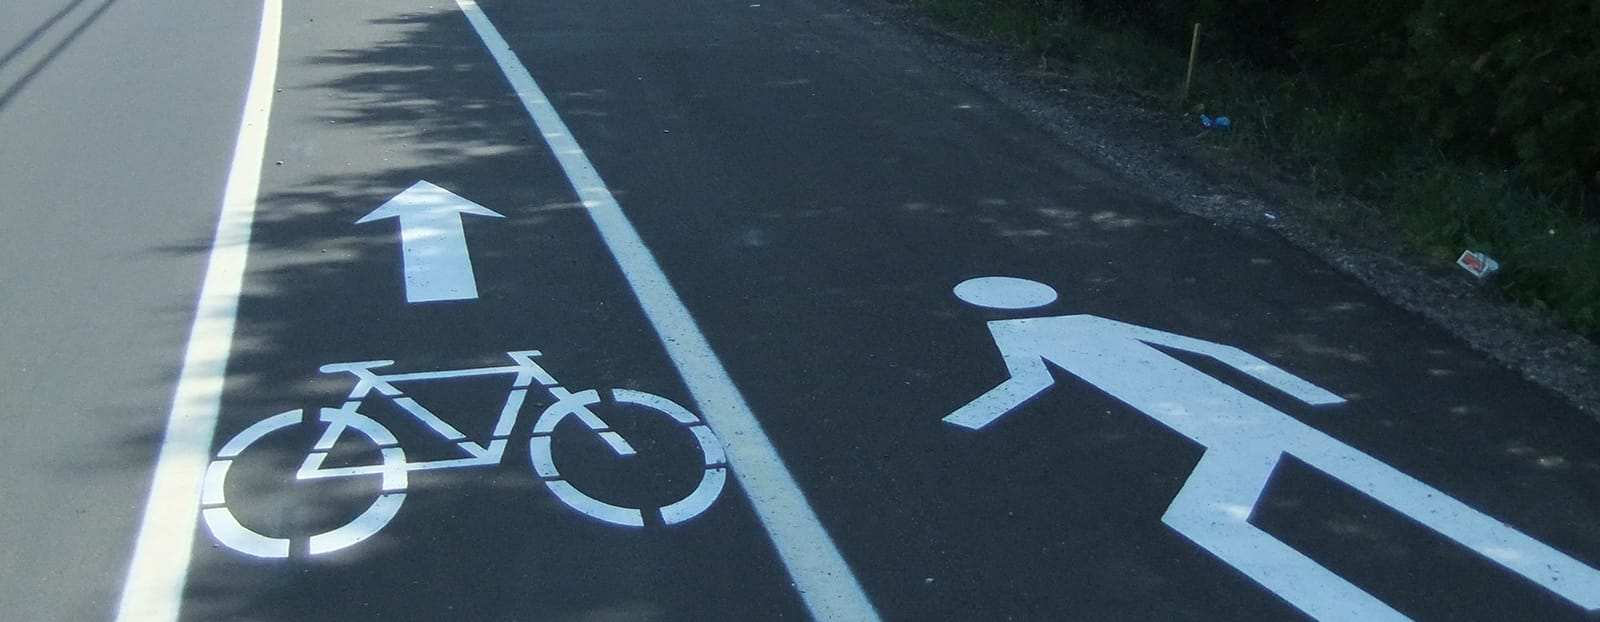 image of bike lane on road